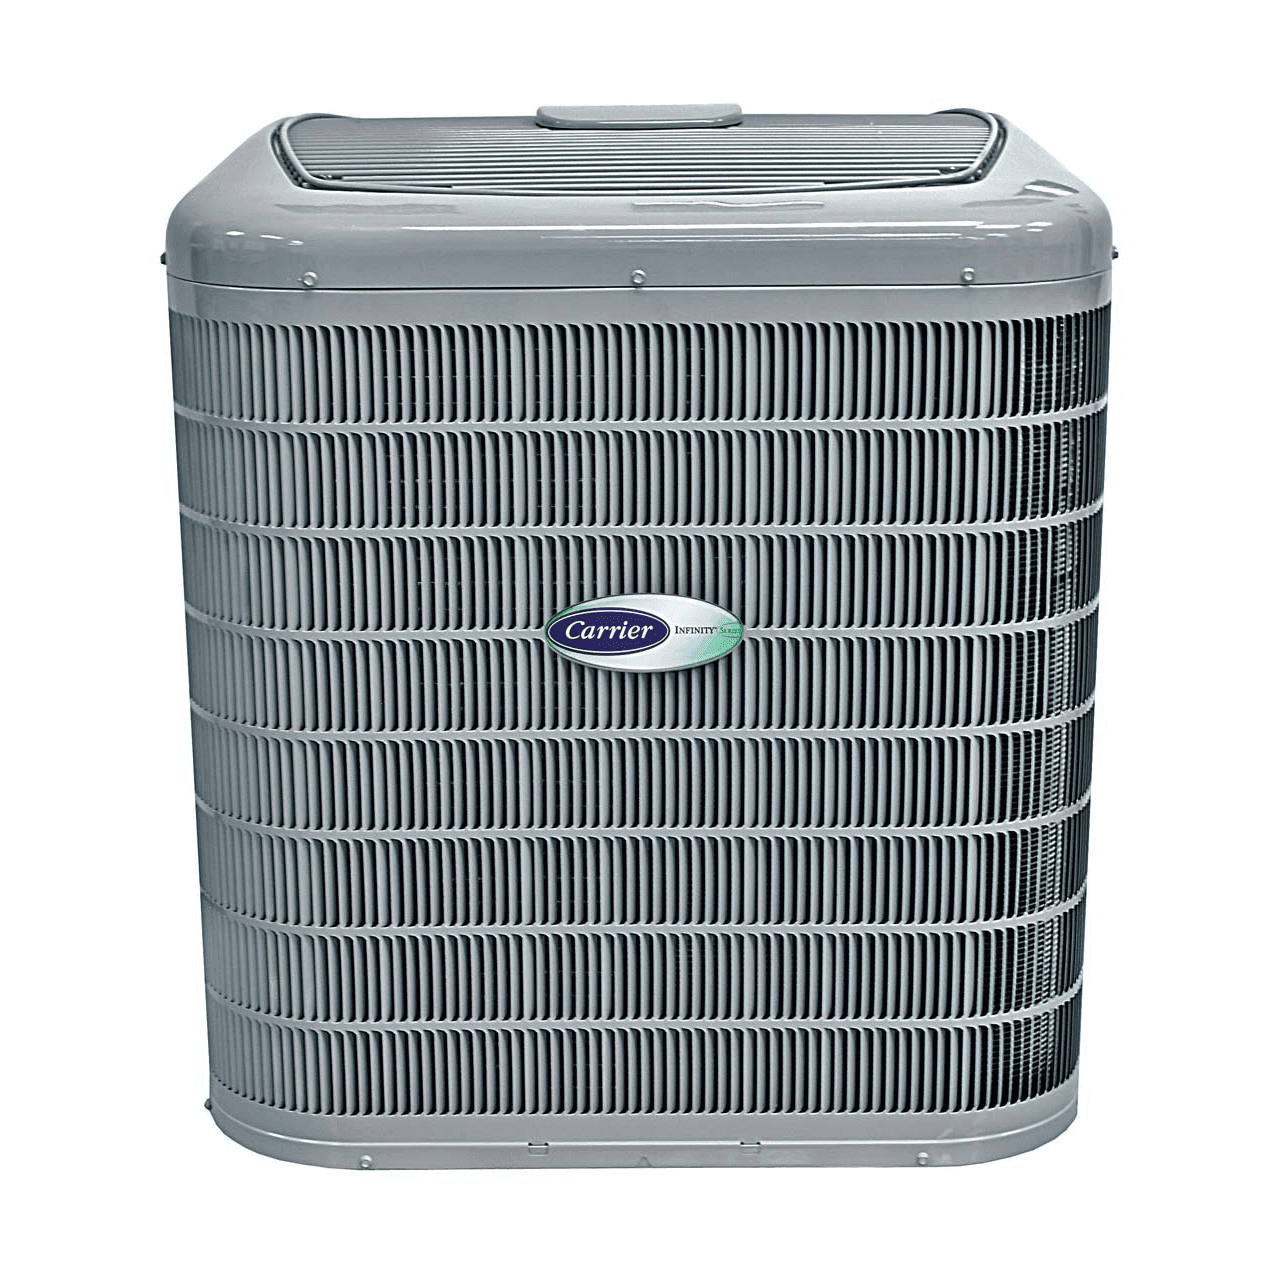 Infinity® 16 Coastal Heat Pump Model: 25HNB6**C